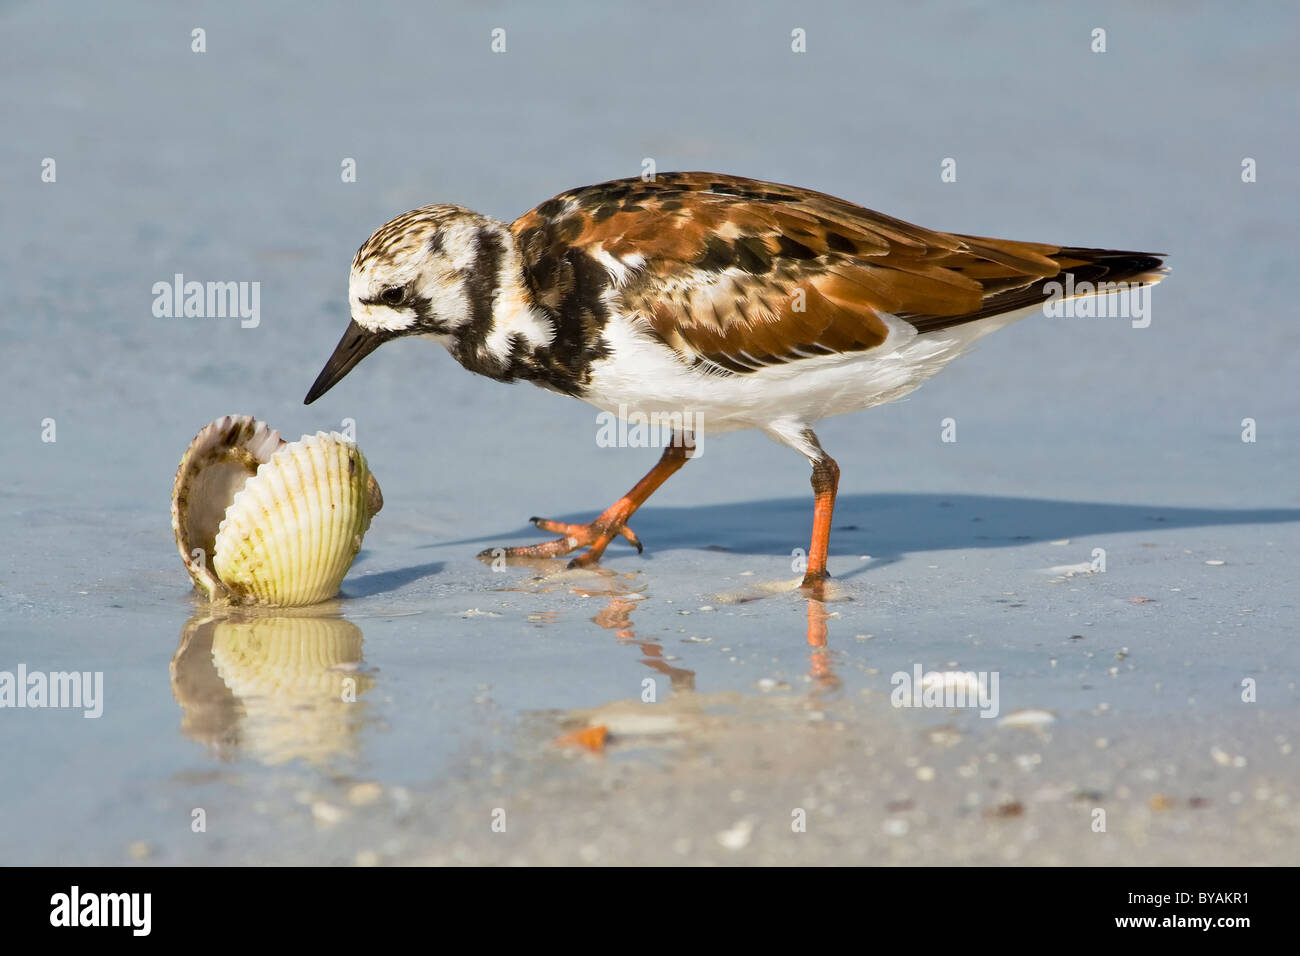 An adult Ruddy Turnstone checking out shell fish on a Floridian beach - Stock Image